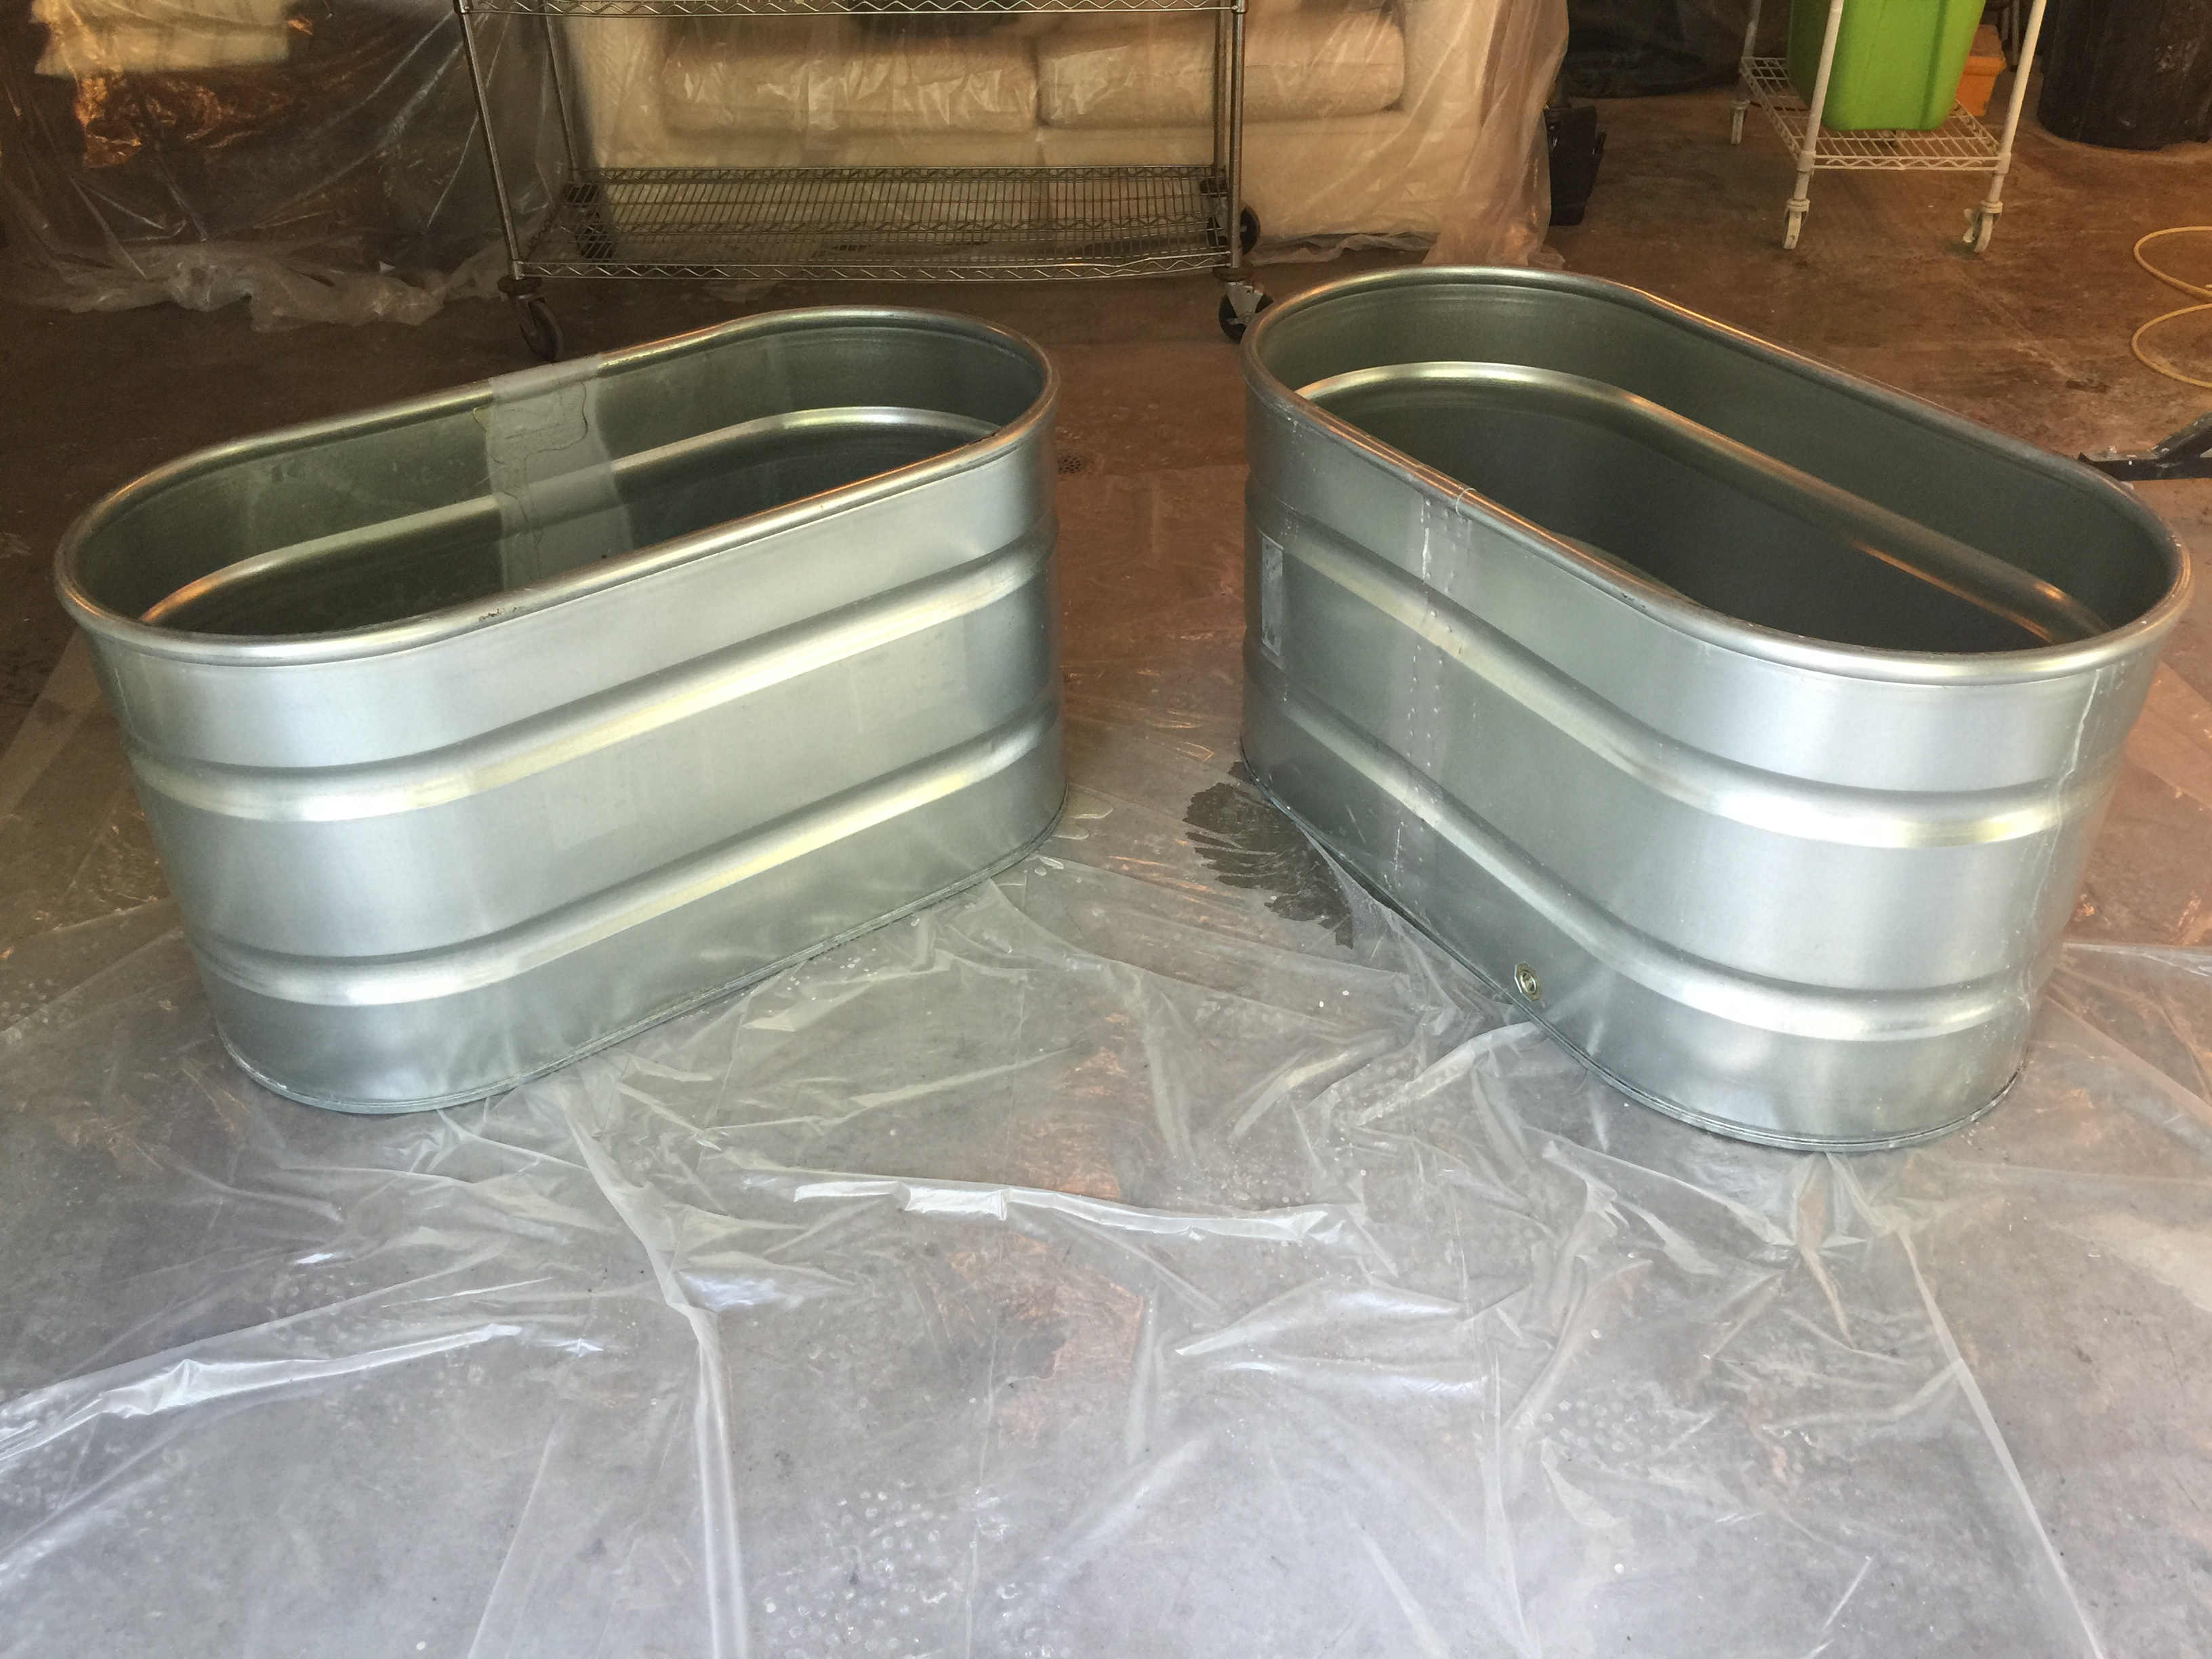 galvanized containers from tractor supply